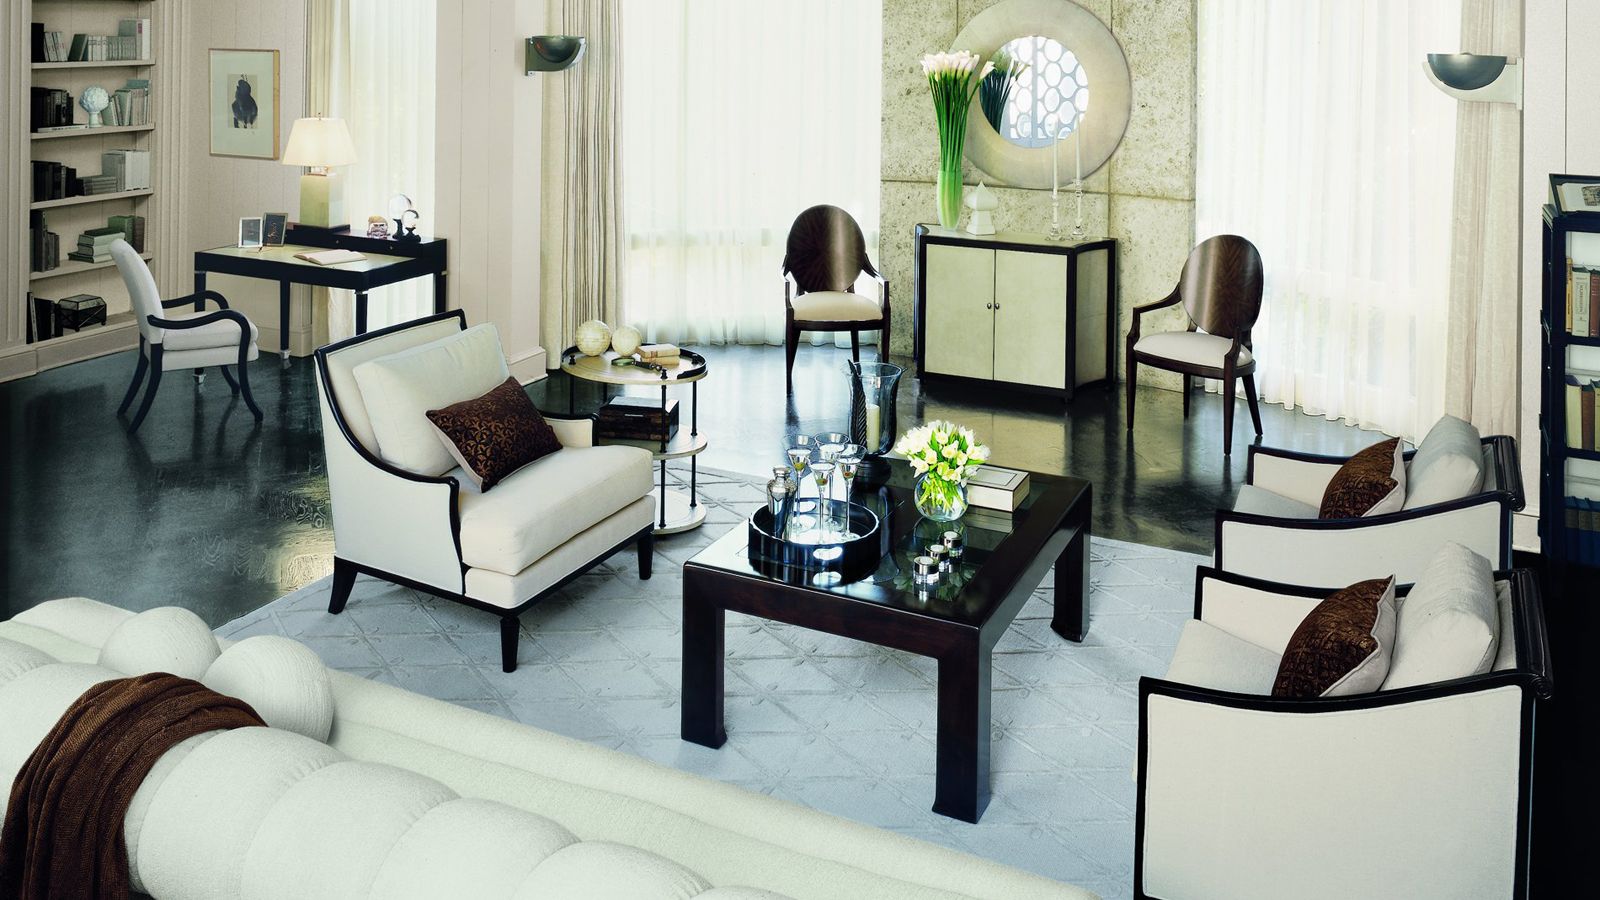 Gatsby style embrace the lifestyle of the great gatsby for Deco de interiores